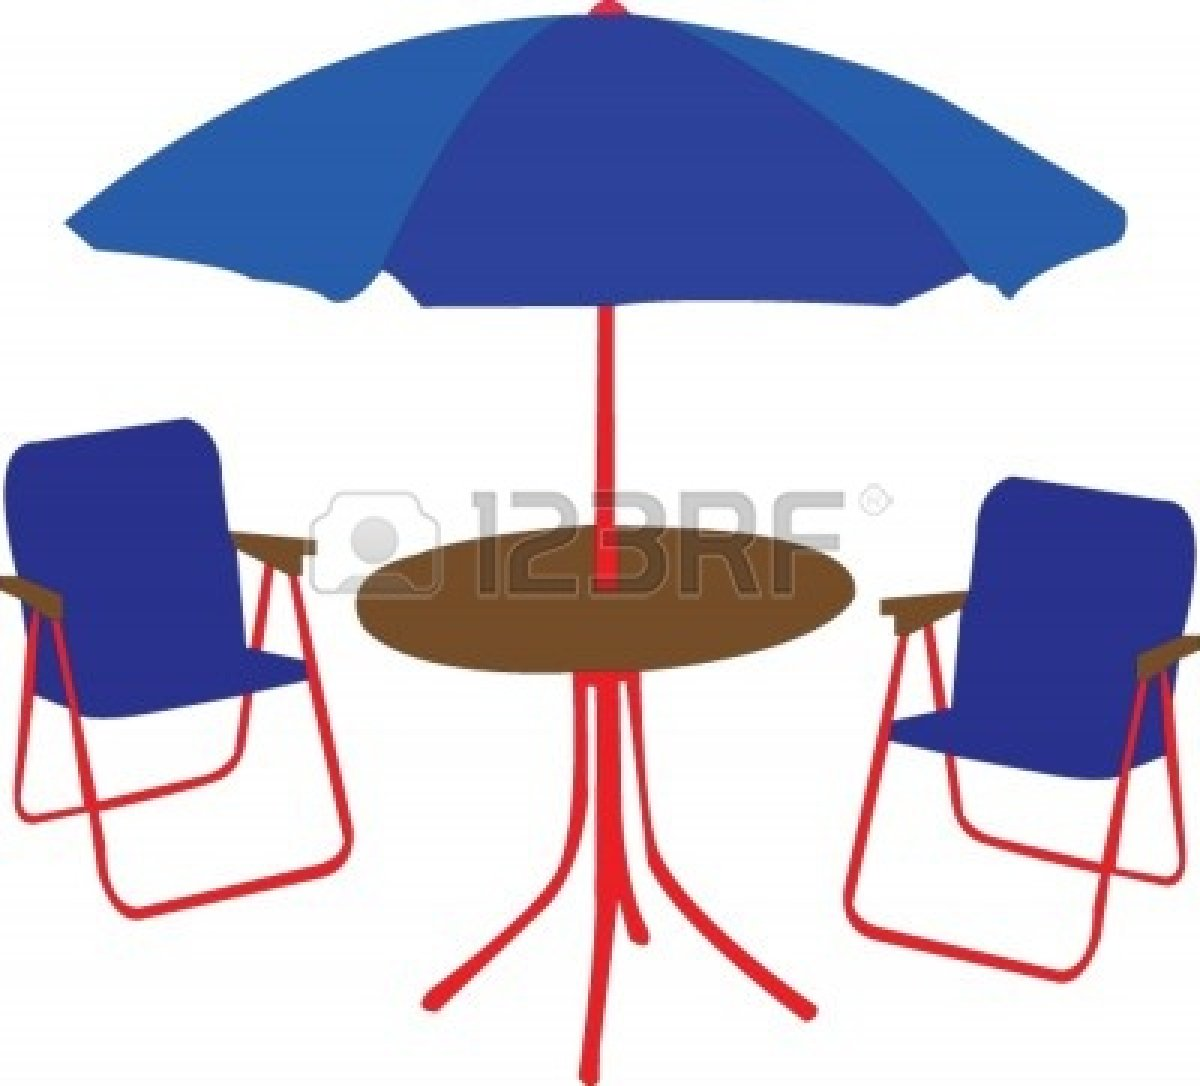 Restaurant tables and chairs clipart - Beach 20chair 20clipart 20black 20and 20white